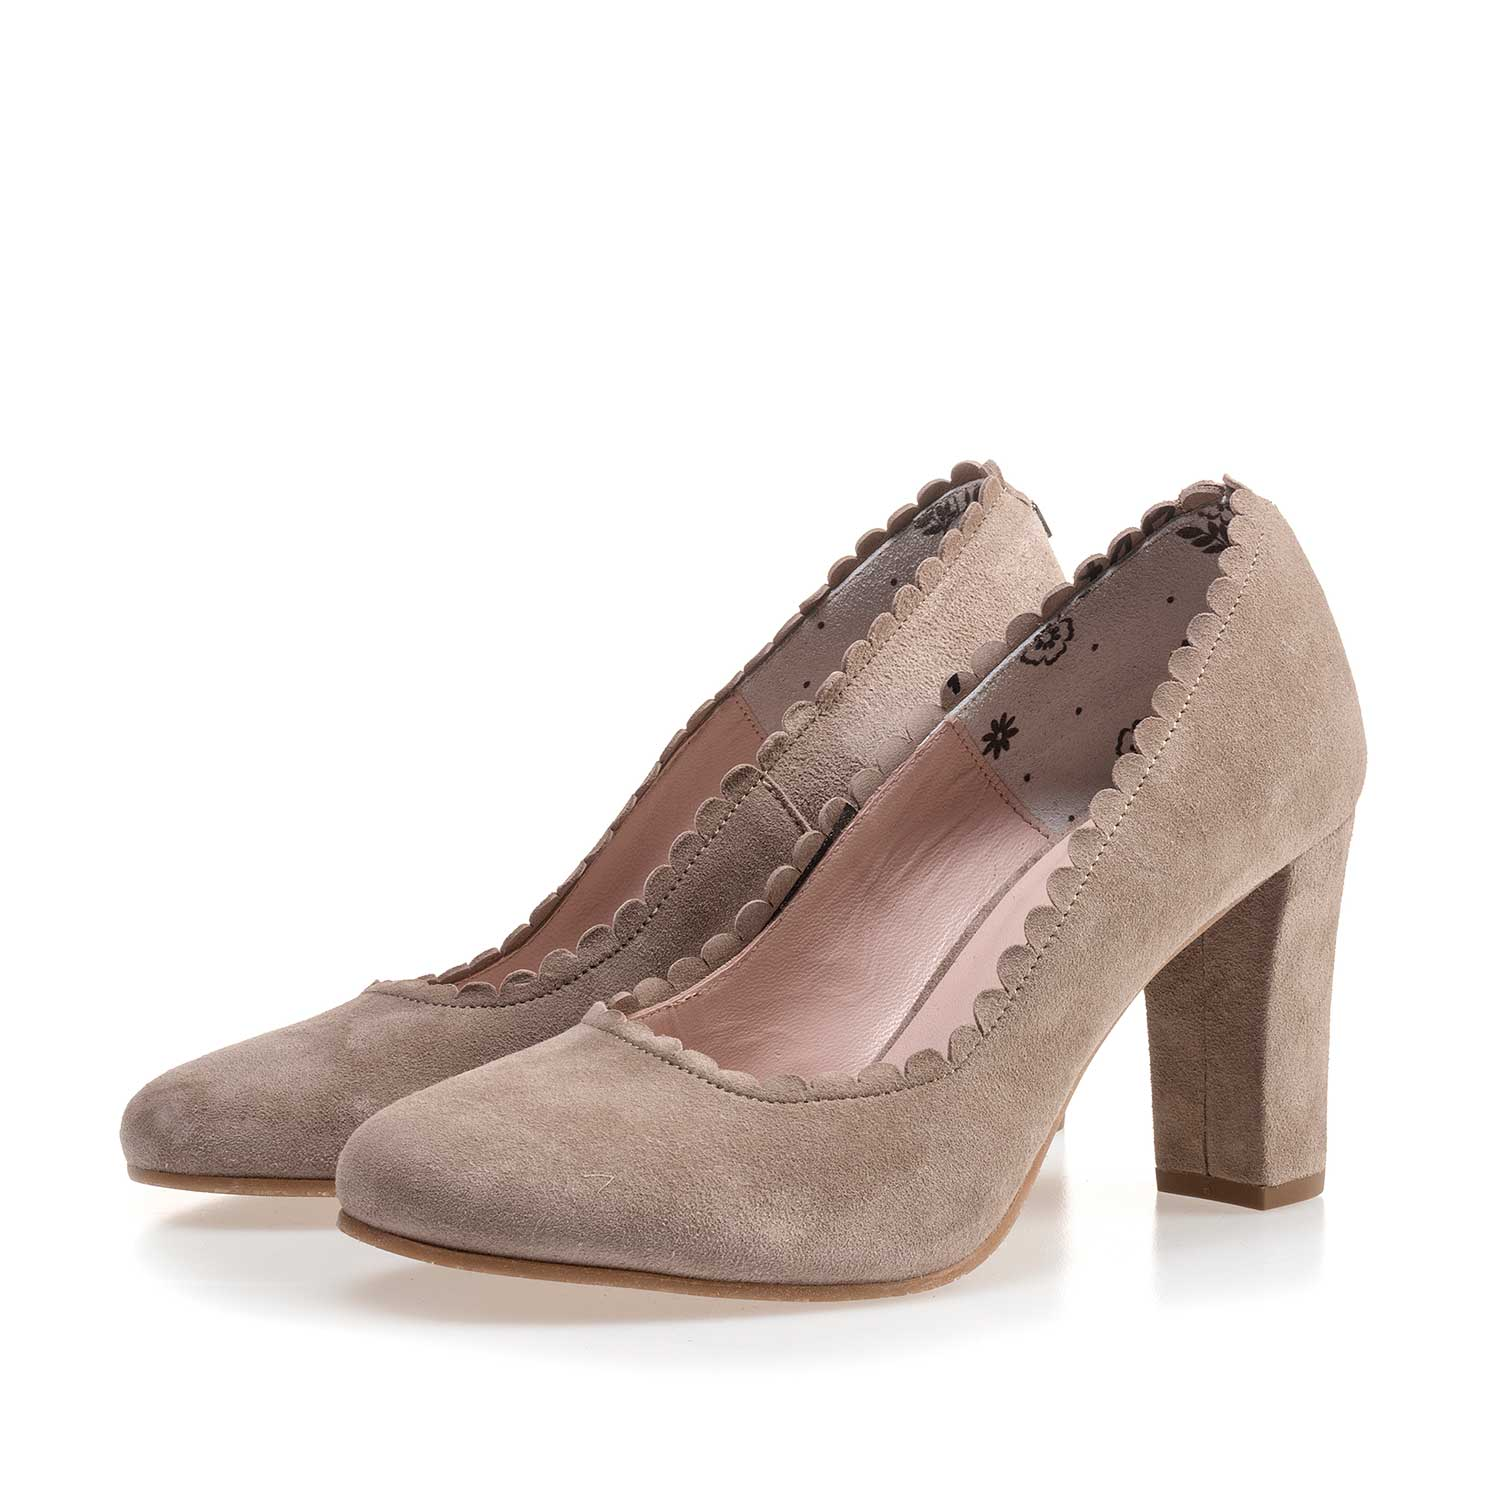 85249/01 - Taupe-coloured calf's suede leather pumps